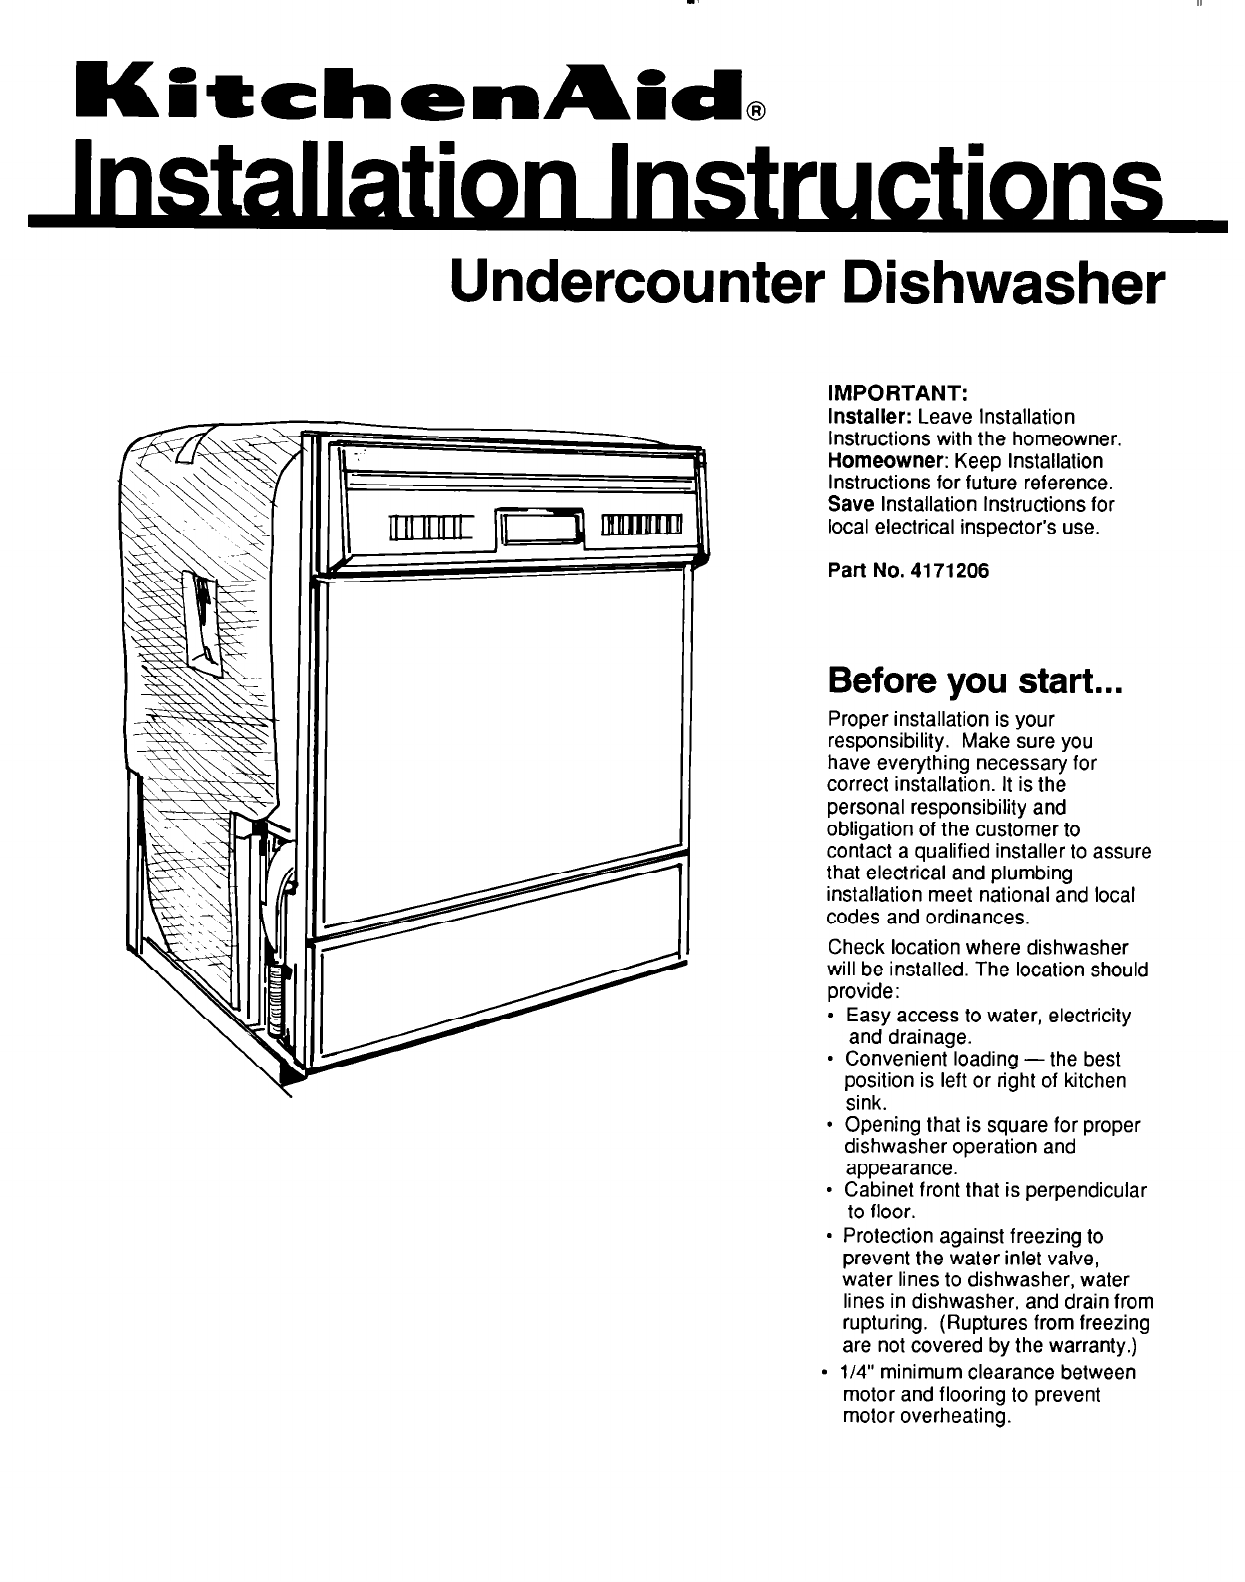 Kitchenaid Dishwasher User Guide